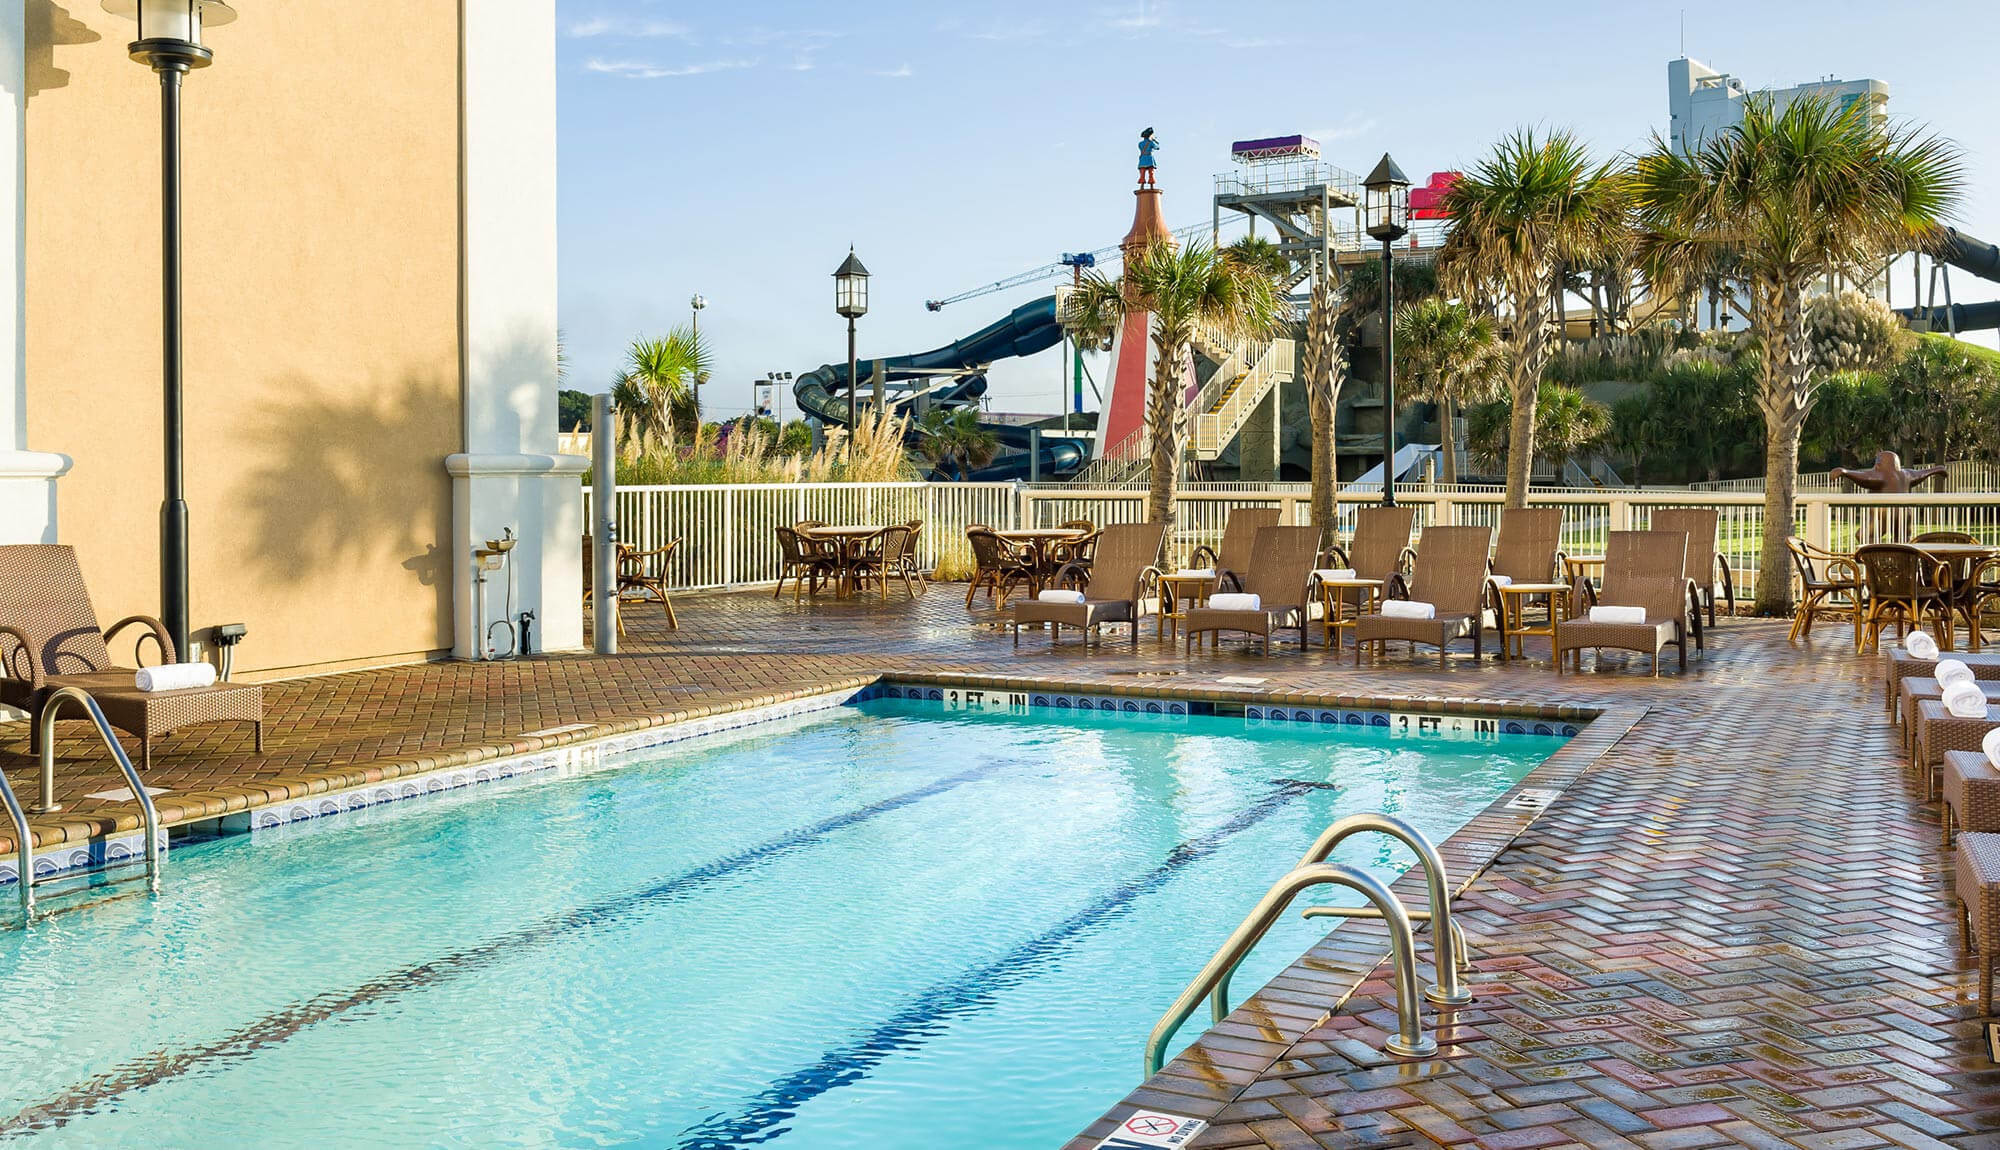 Lap pool with Family Kingdom Amusement Park in background | Westgate Myrtle Beach Oceanfront Resort